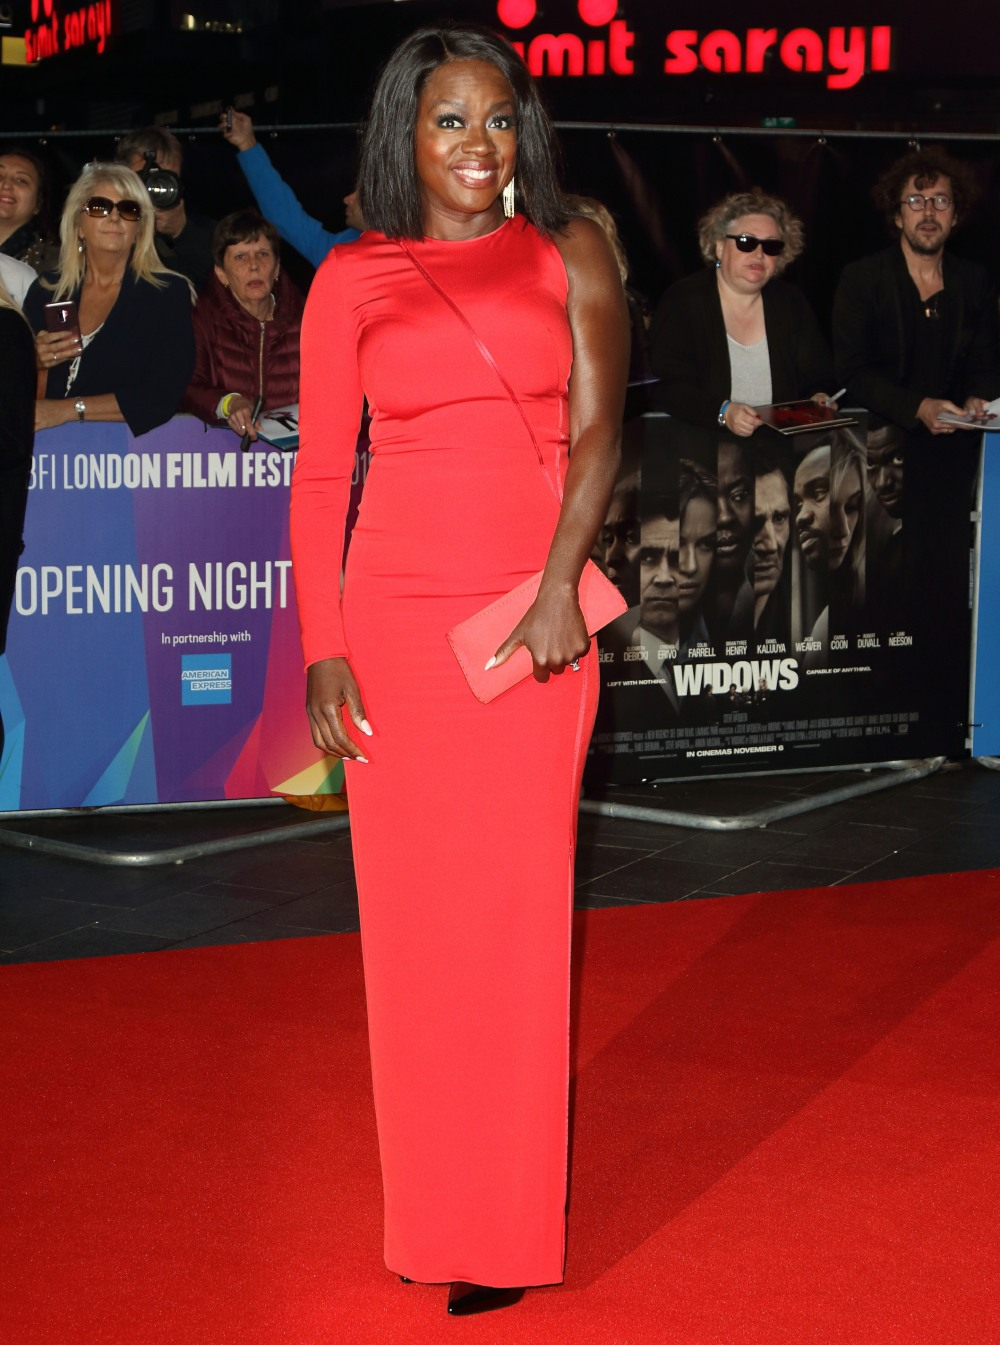 62nd BFI London Film Festival Opening Gala